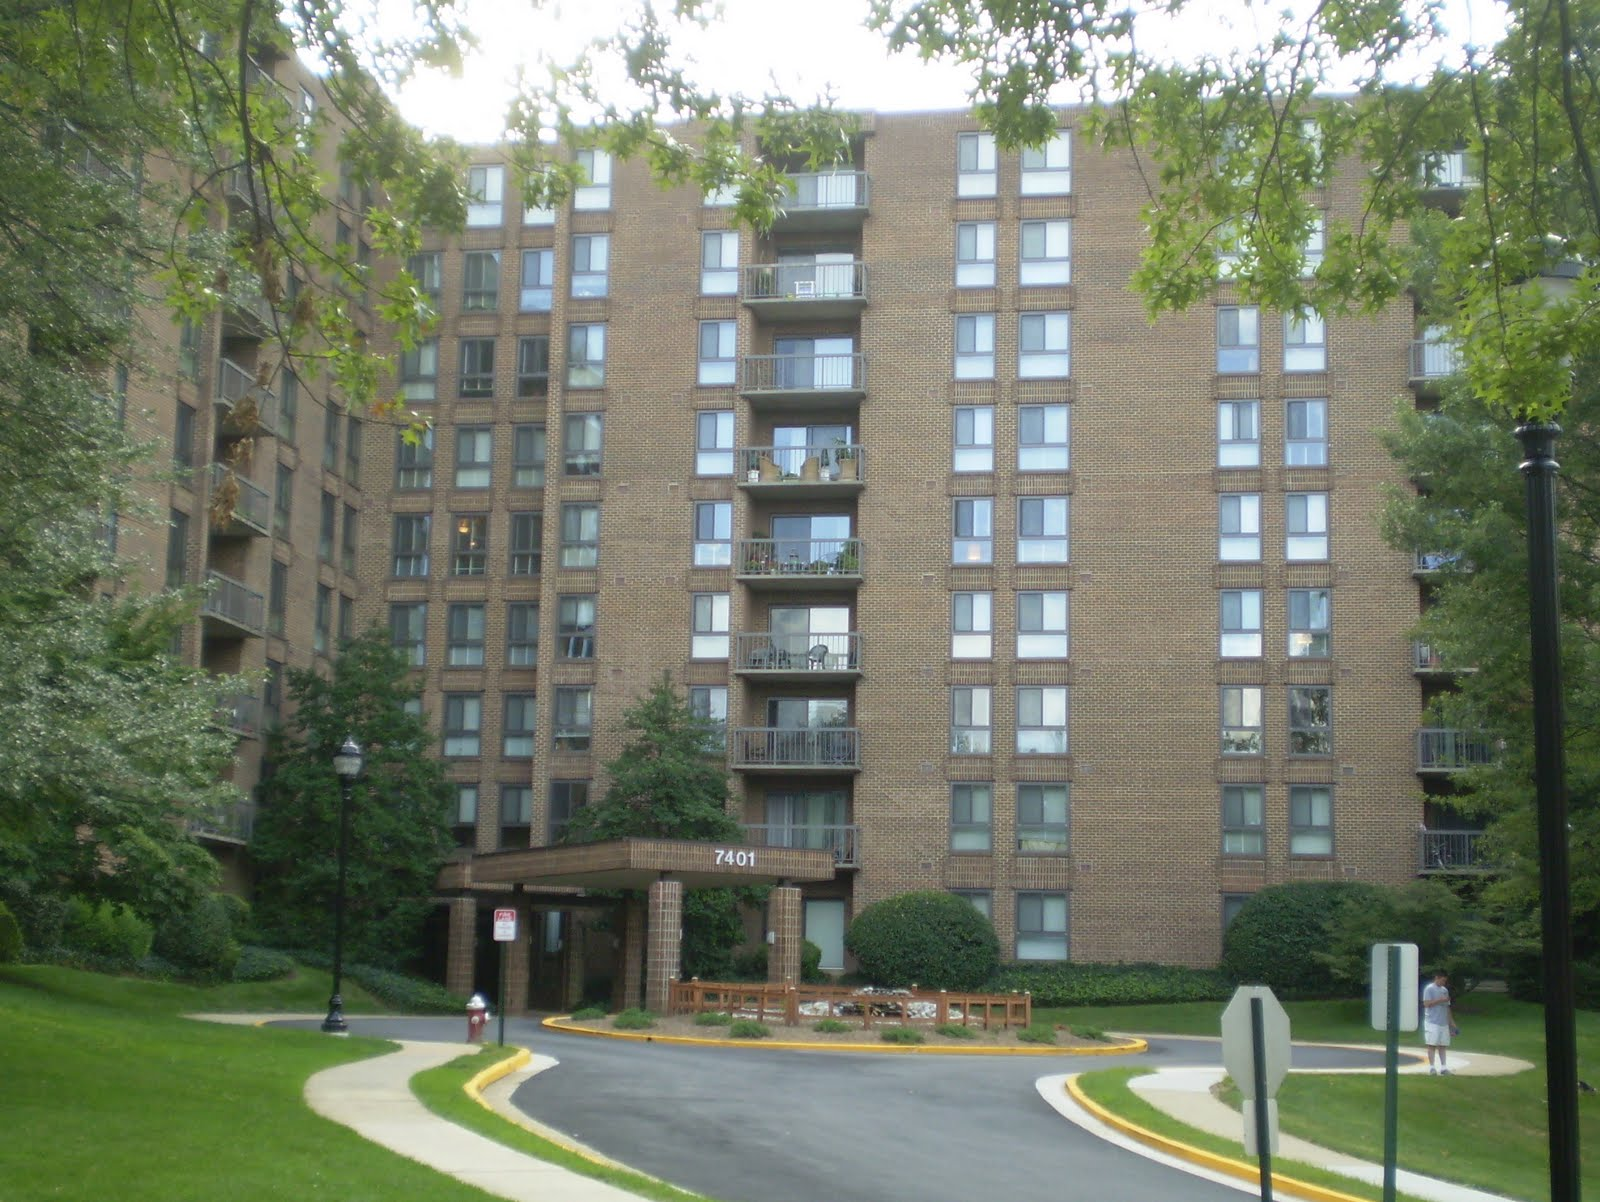 the Annandale Blog Neighborhood Spotlight The Parliaments is a